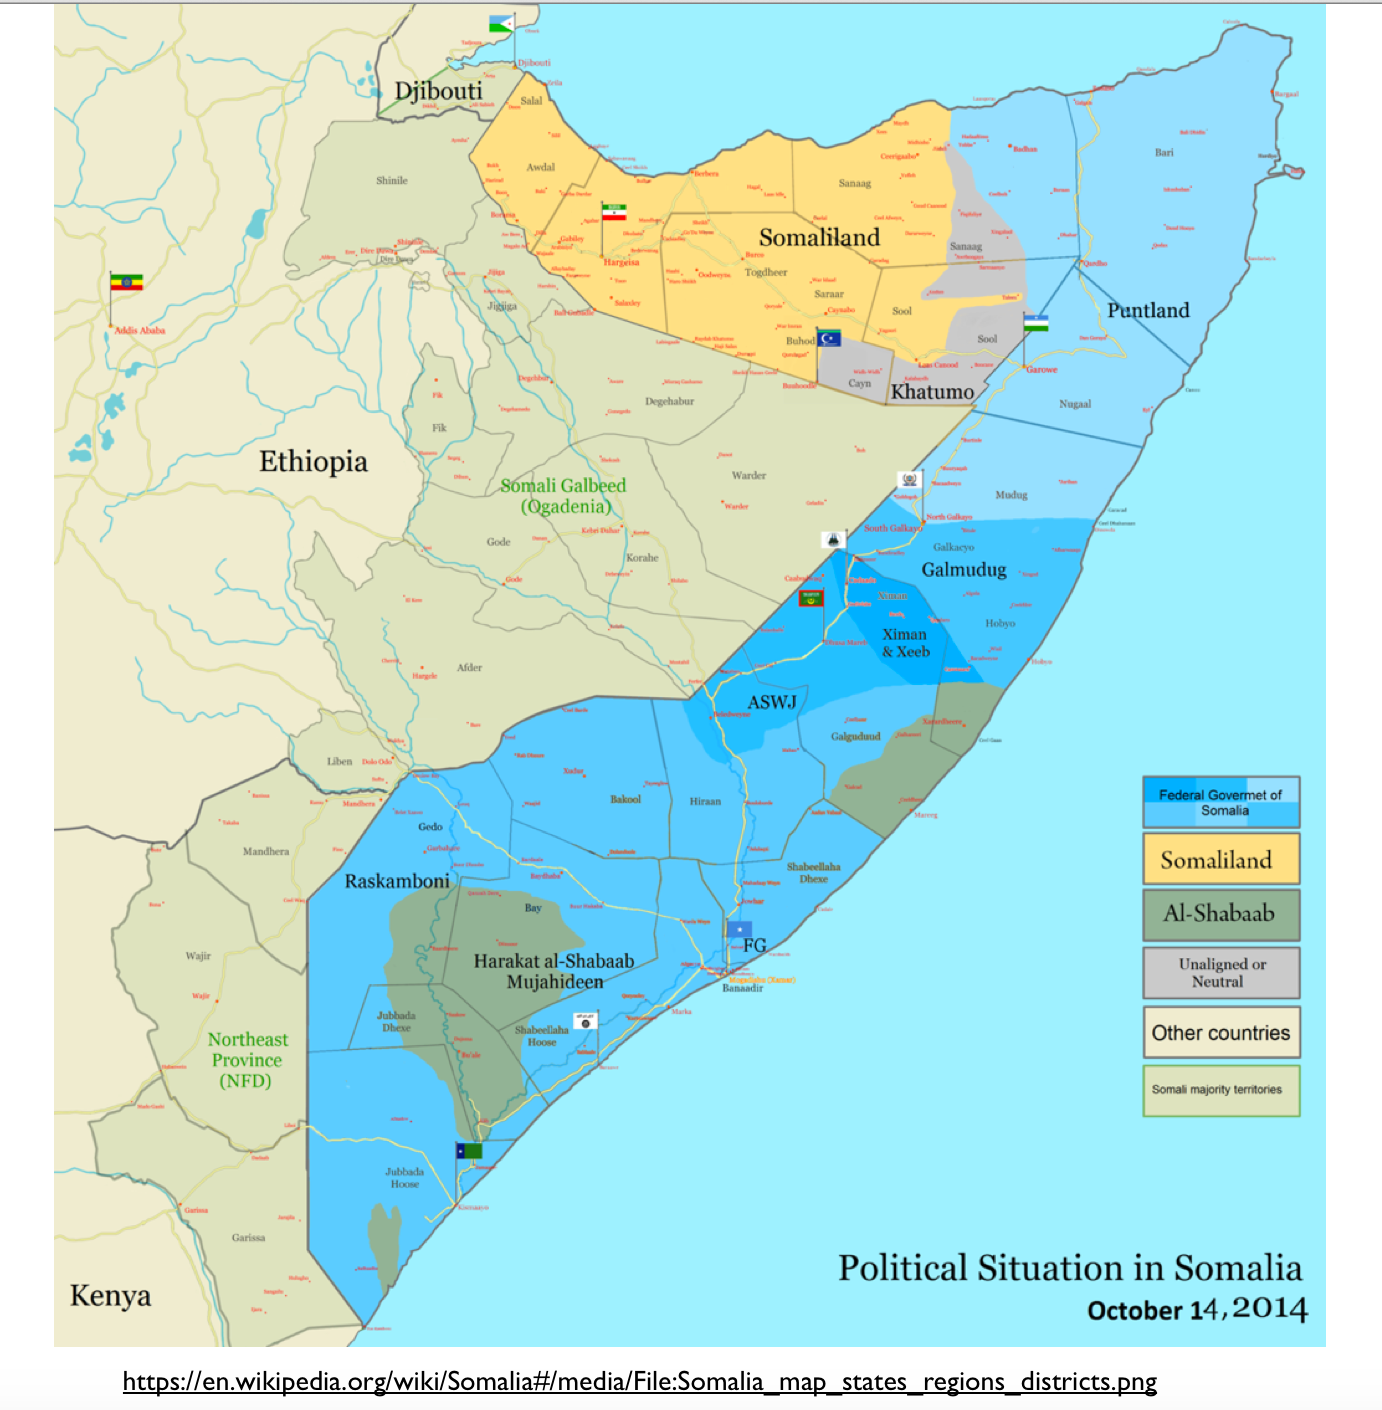 Somalia Political Situation Map Geocurrents